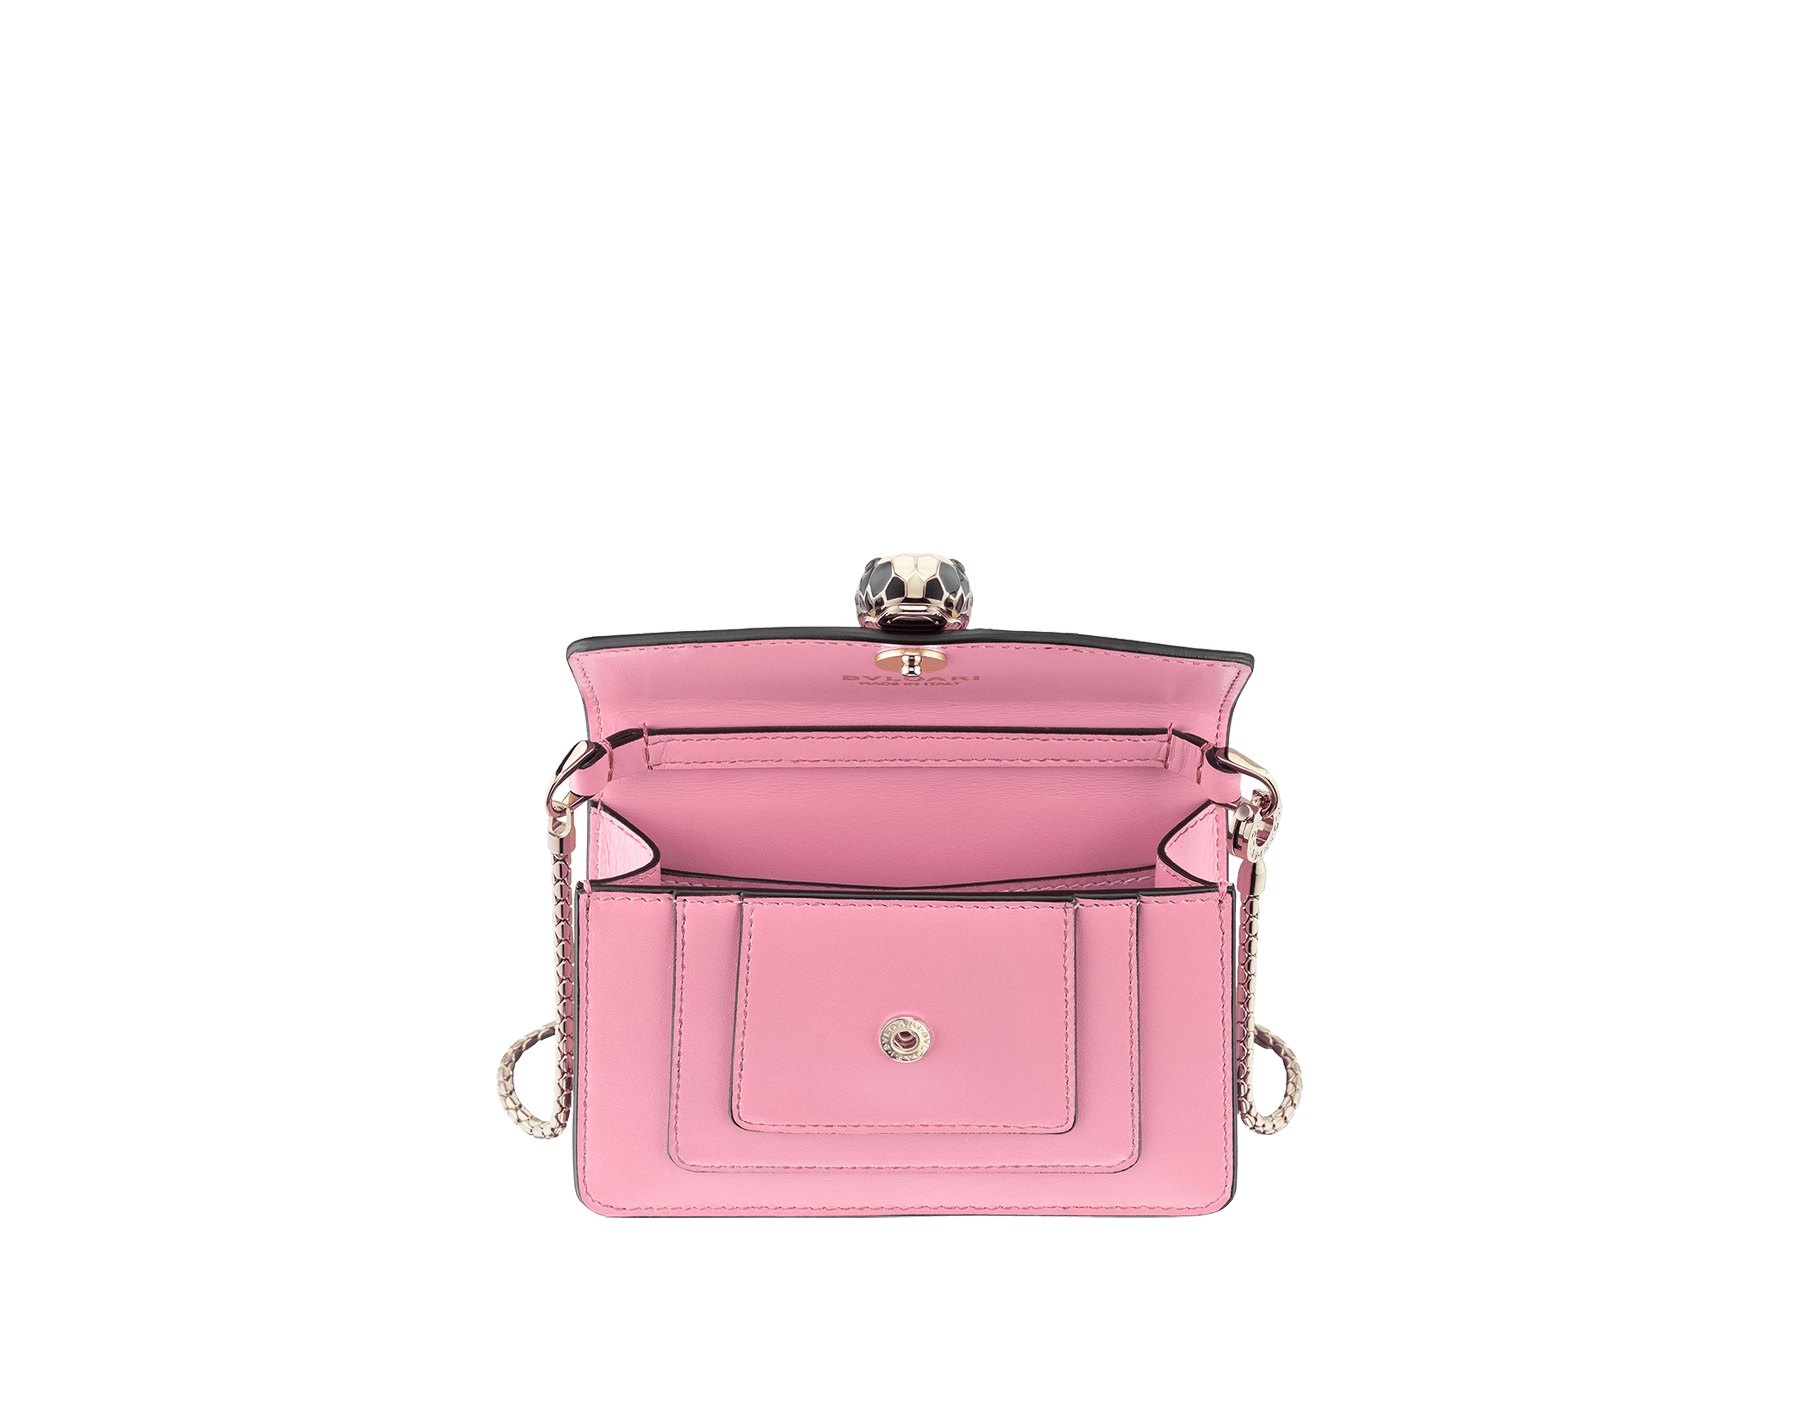 Bag charm Serpenti Forever miniature in flamingo quartz calf leather, with bordeaux calf leather lining. Iconic brass light gold plated snakehead stud closure enameled in black and white and finished with green enamel eyes. 288369 image 2